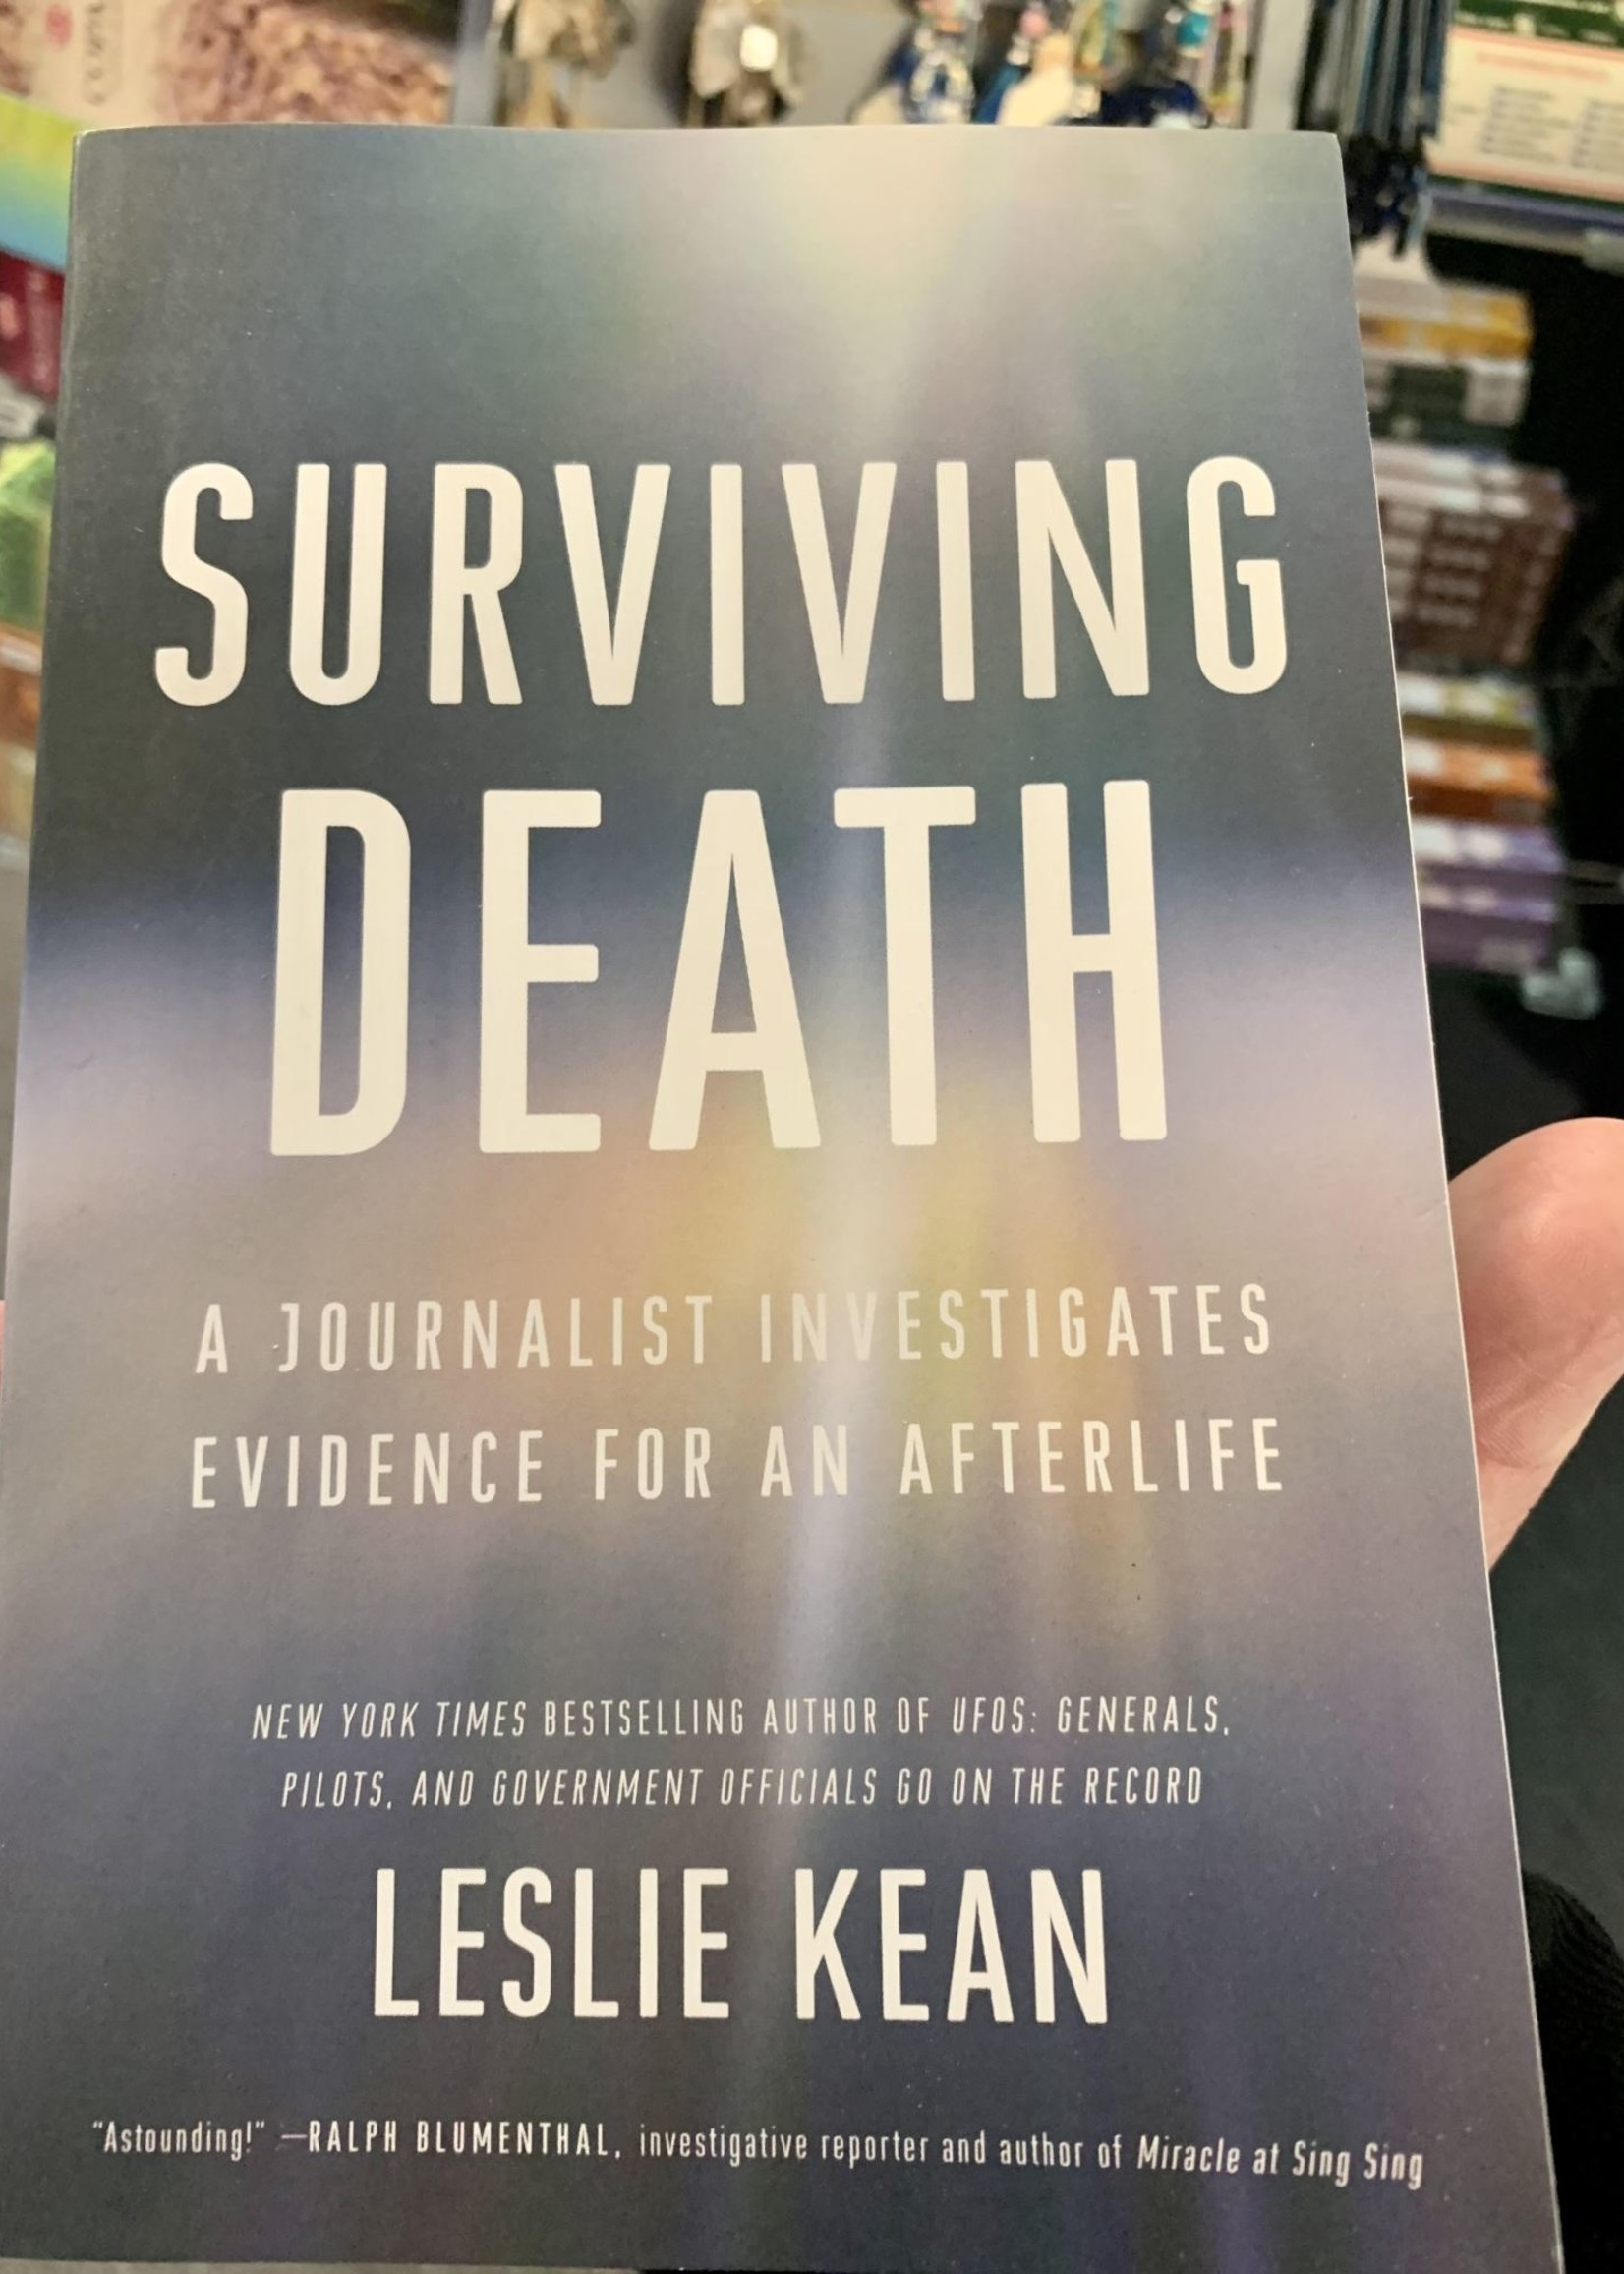 Surviving Death A JOURNALIST INVESTIGATES EVIDENCE FOR AN AFTERLIFE - By LESLIE KEAN